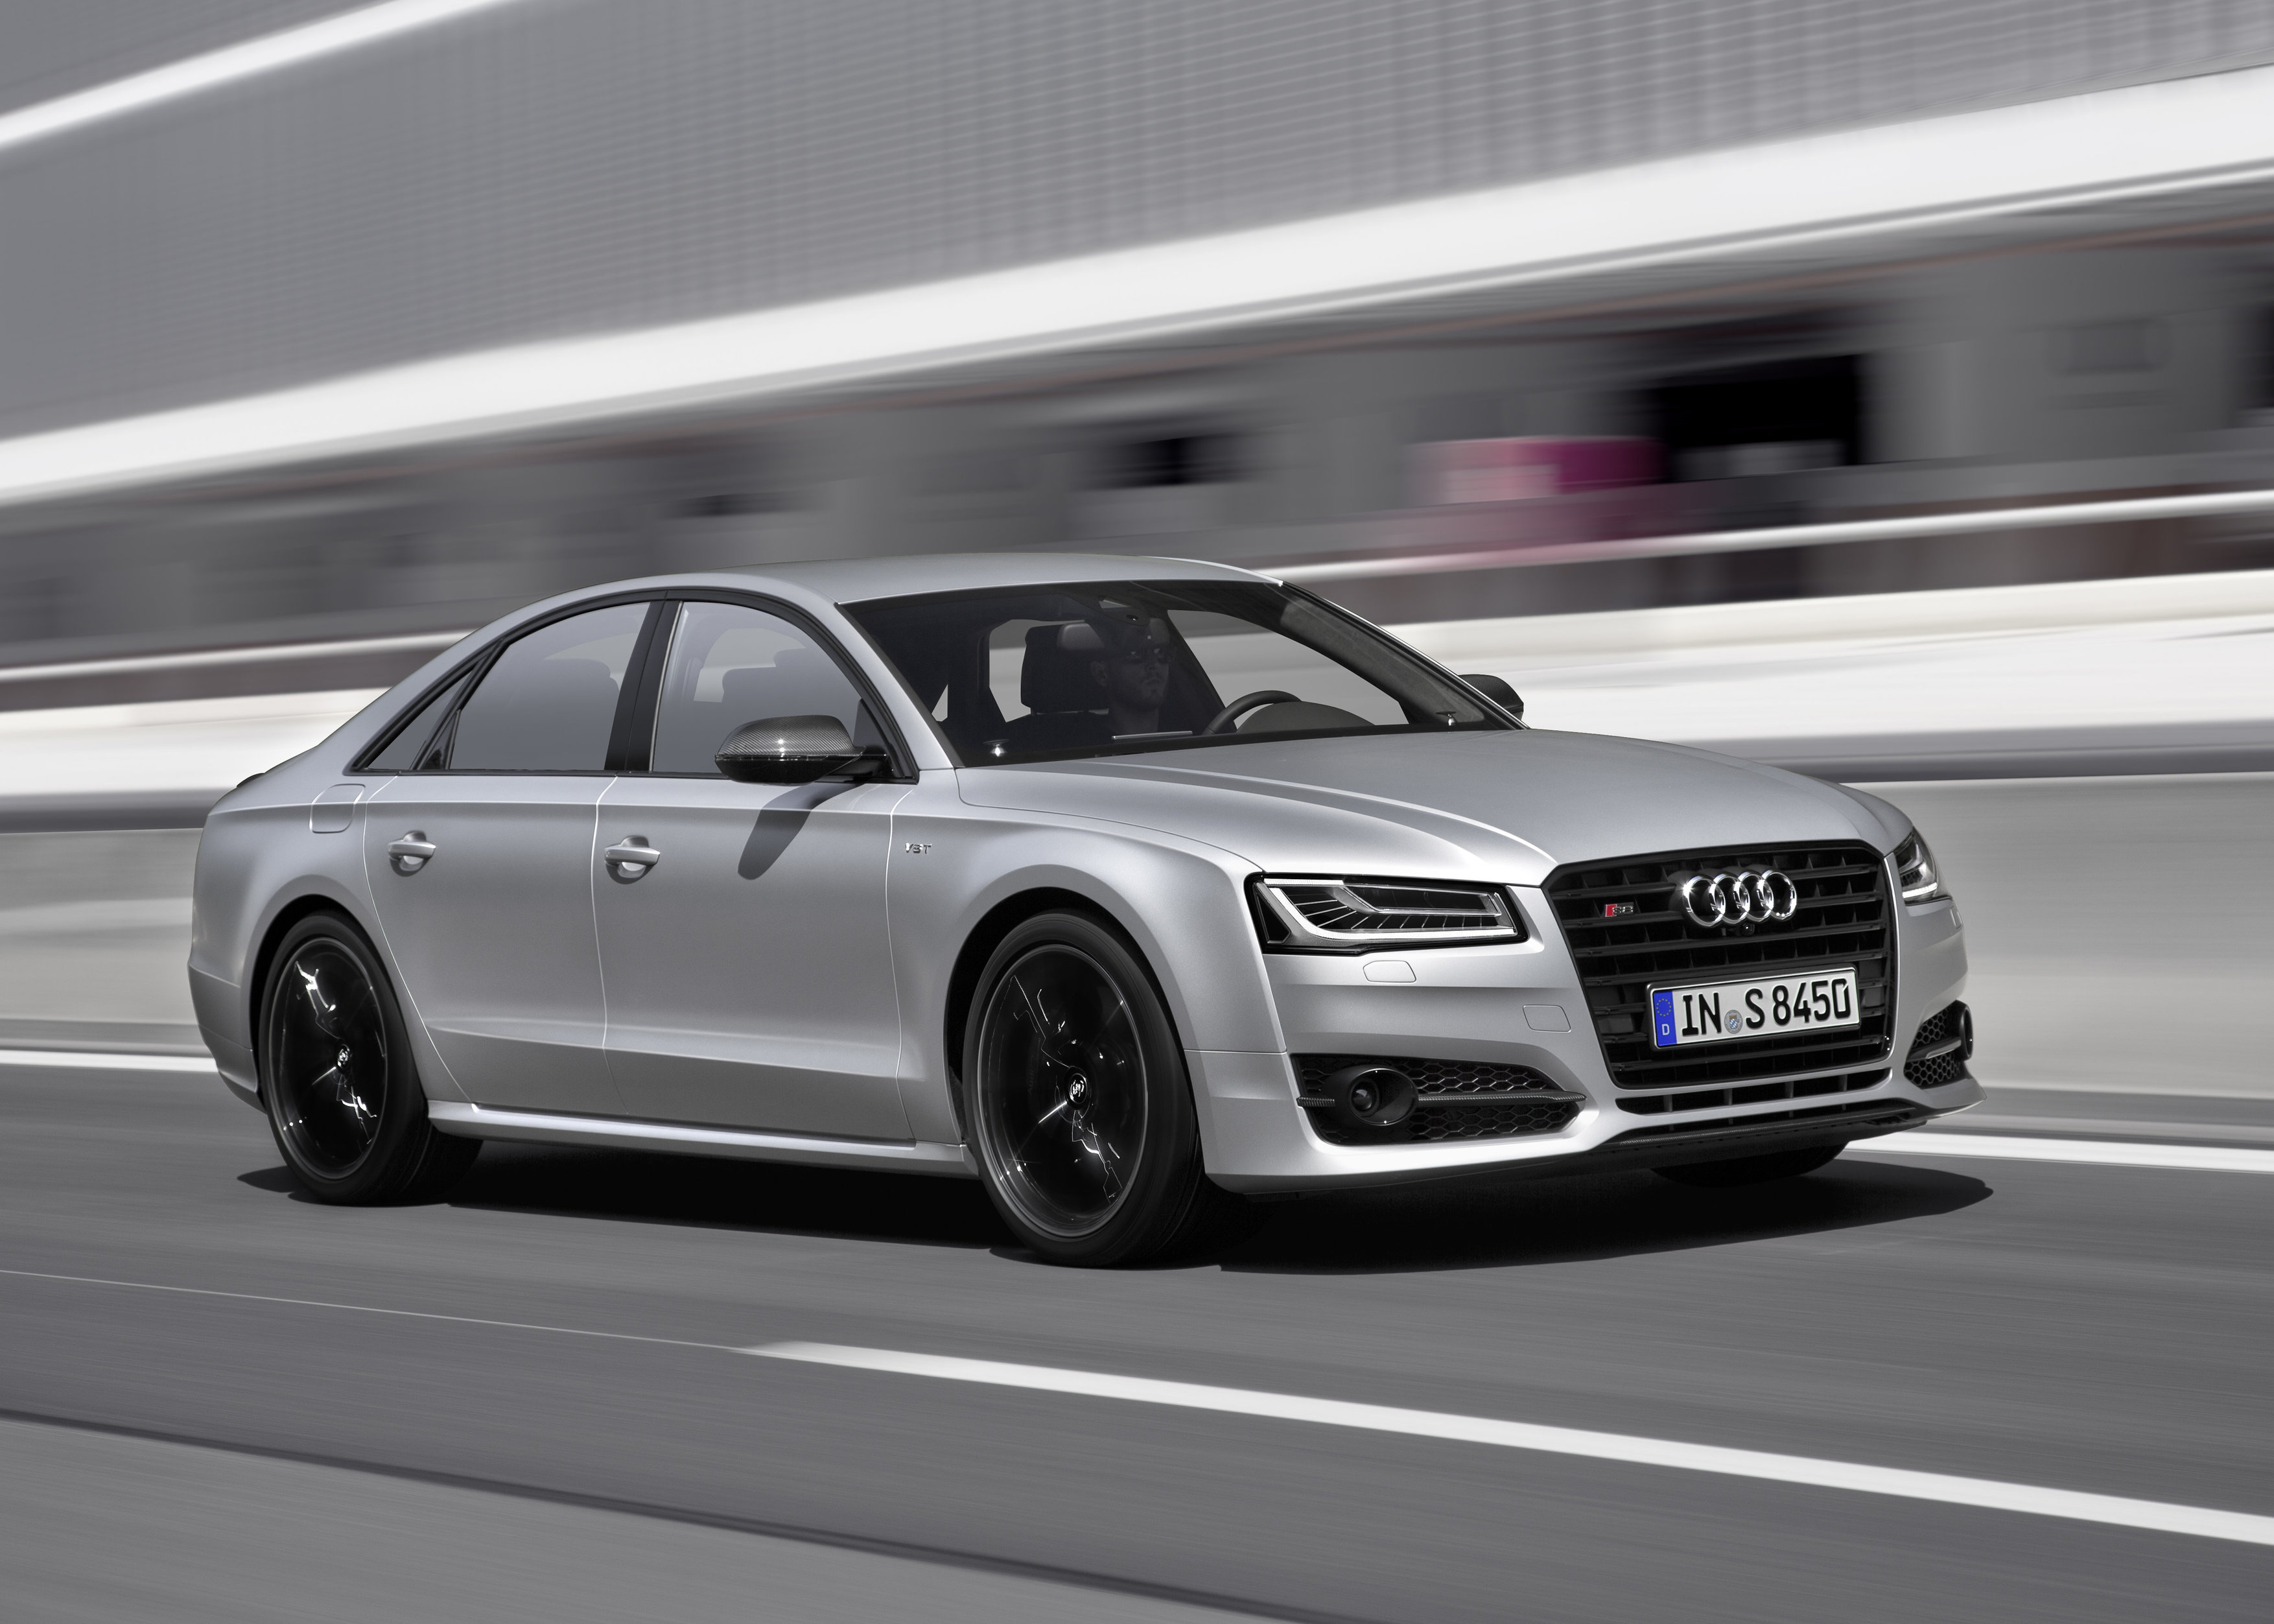 2015 Audi S4 / 2015 Audi S8 plus – IAA 2015 Preview